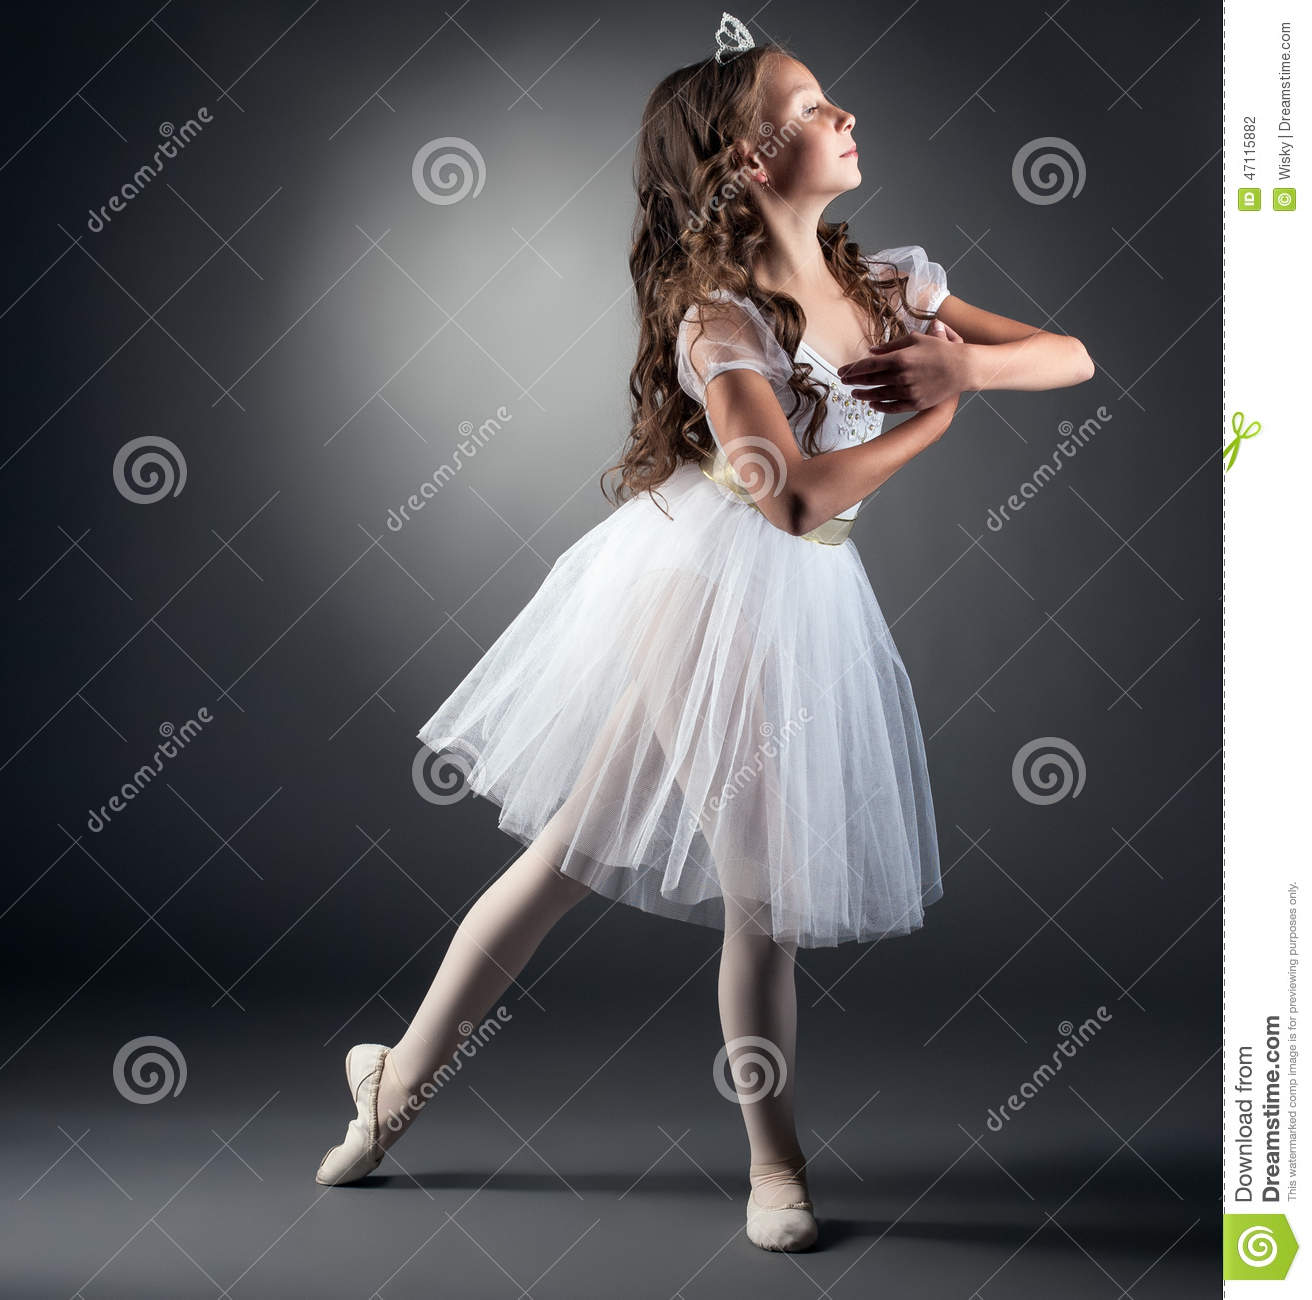 Modern dress clothes for a woman - Side View Of Adorable Little Ballerina Posing Stock Photo Image